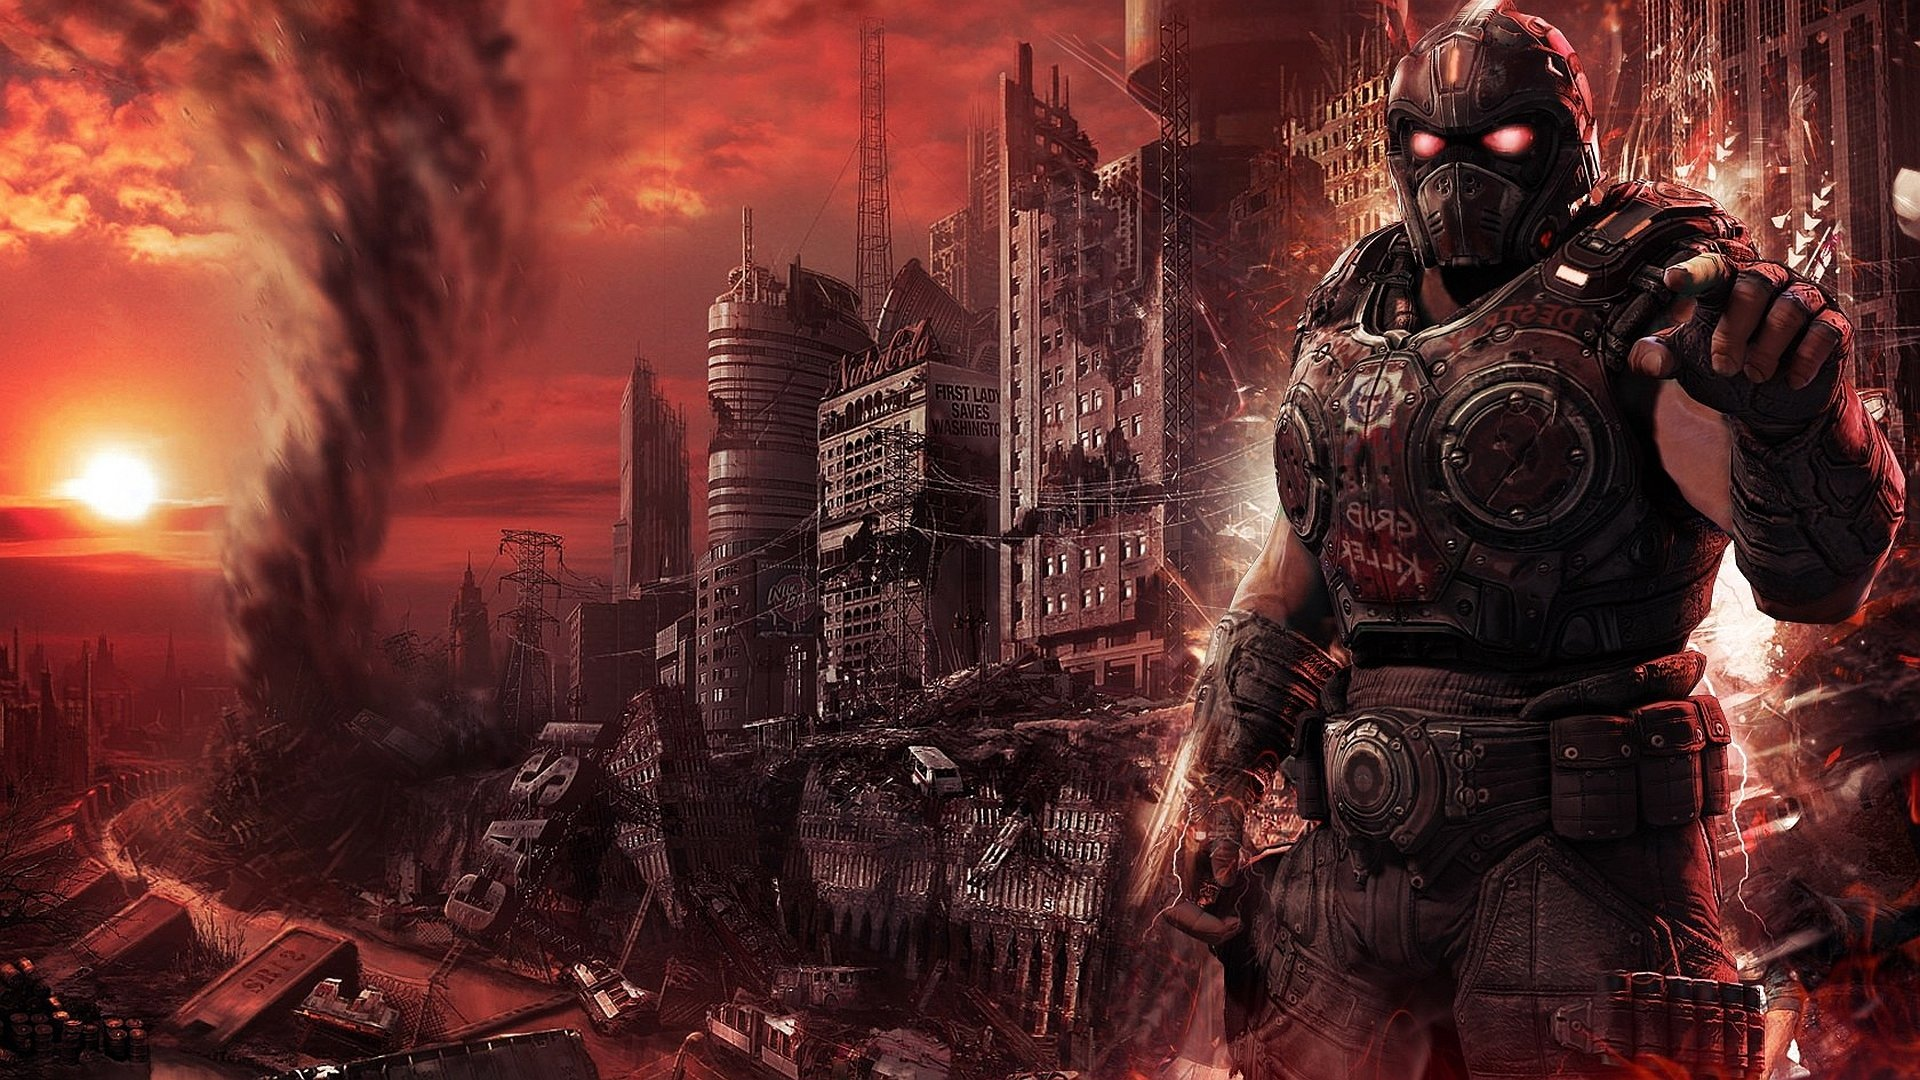 Video Game - Crossover  Fallout Gear Of War Wallpaper